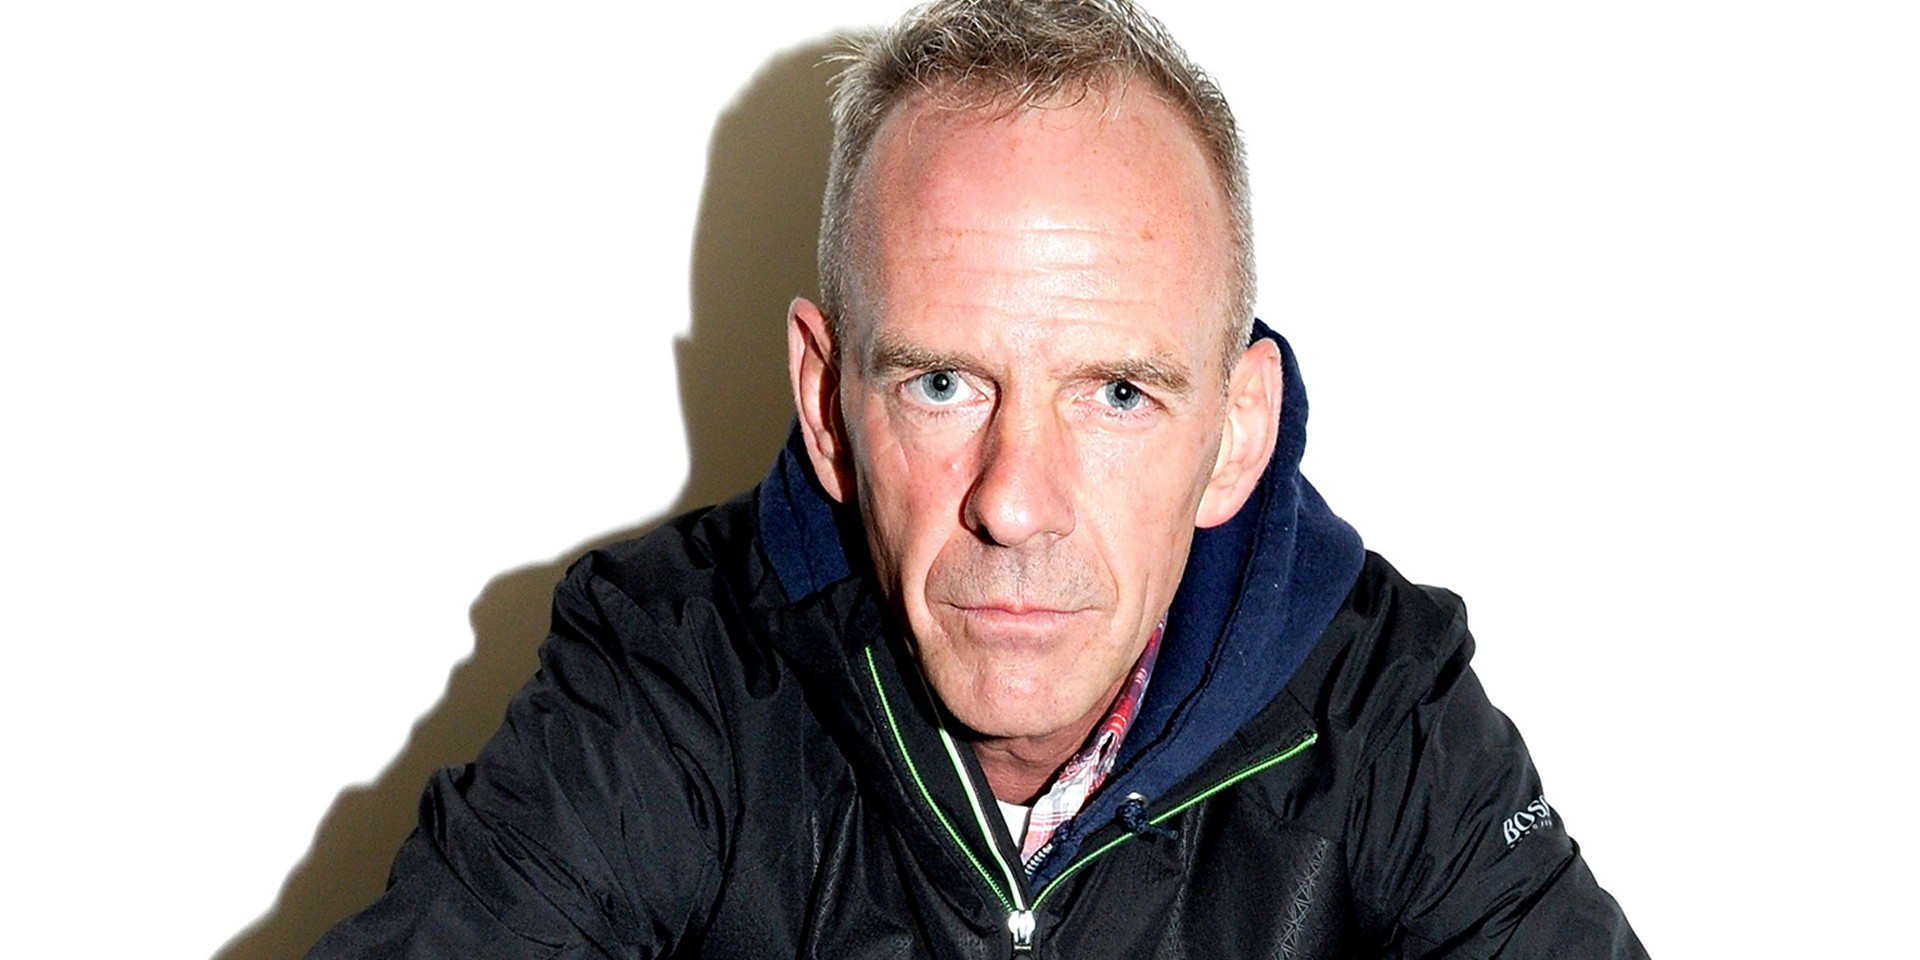 Fatboy Slim is coming back to Manila this April